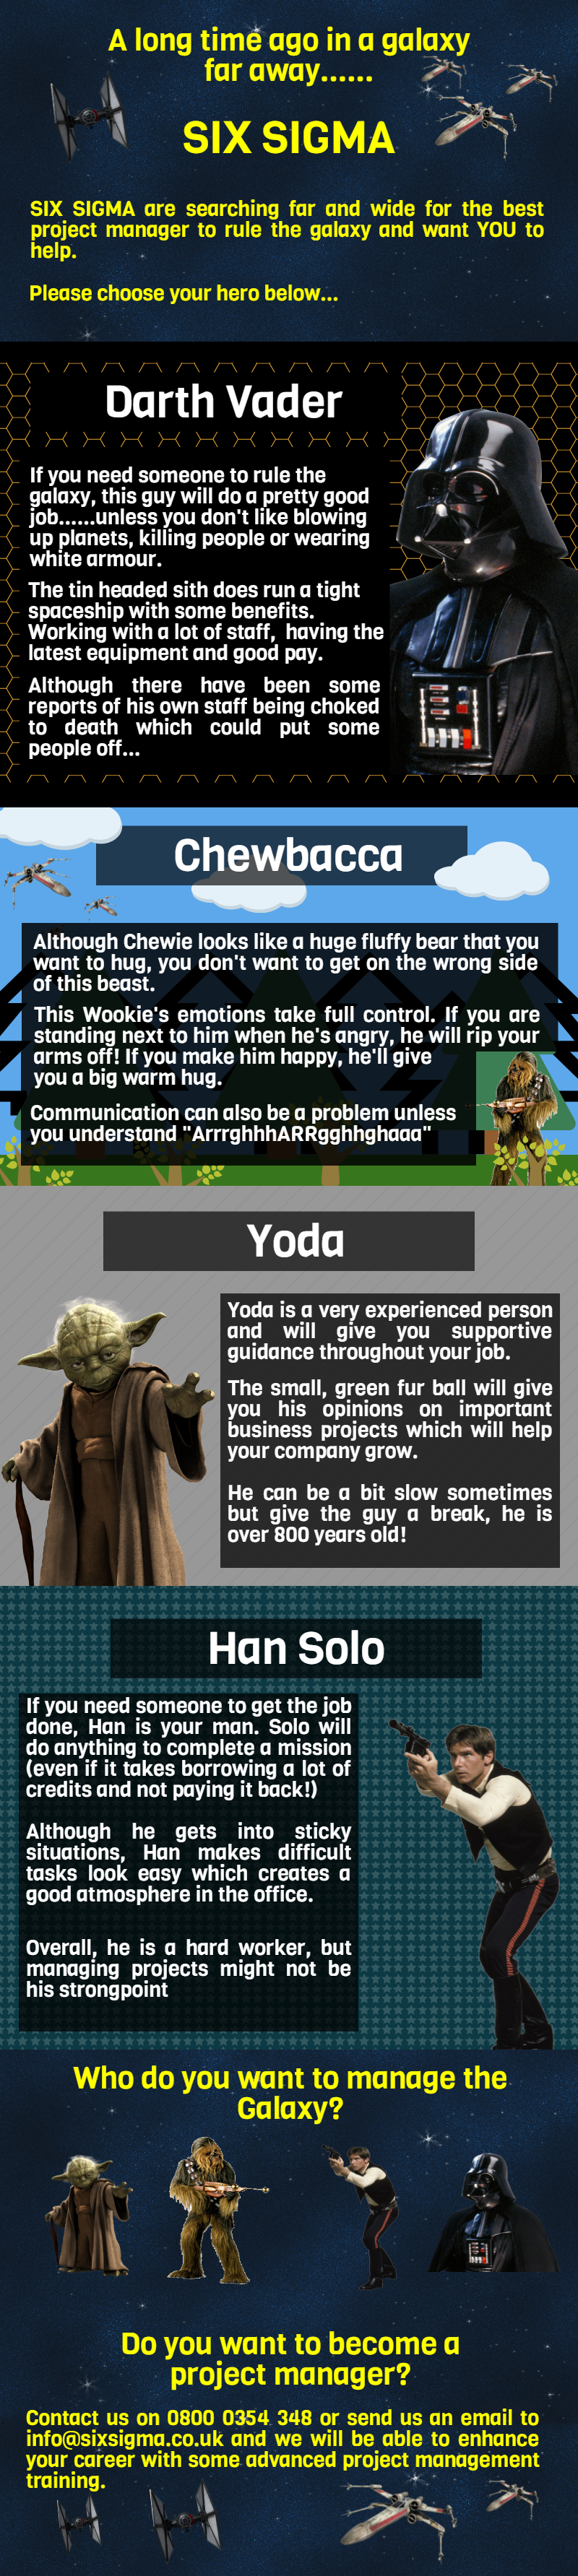 Which Star Wars Character is the Best Project Manager?